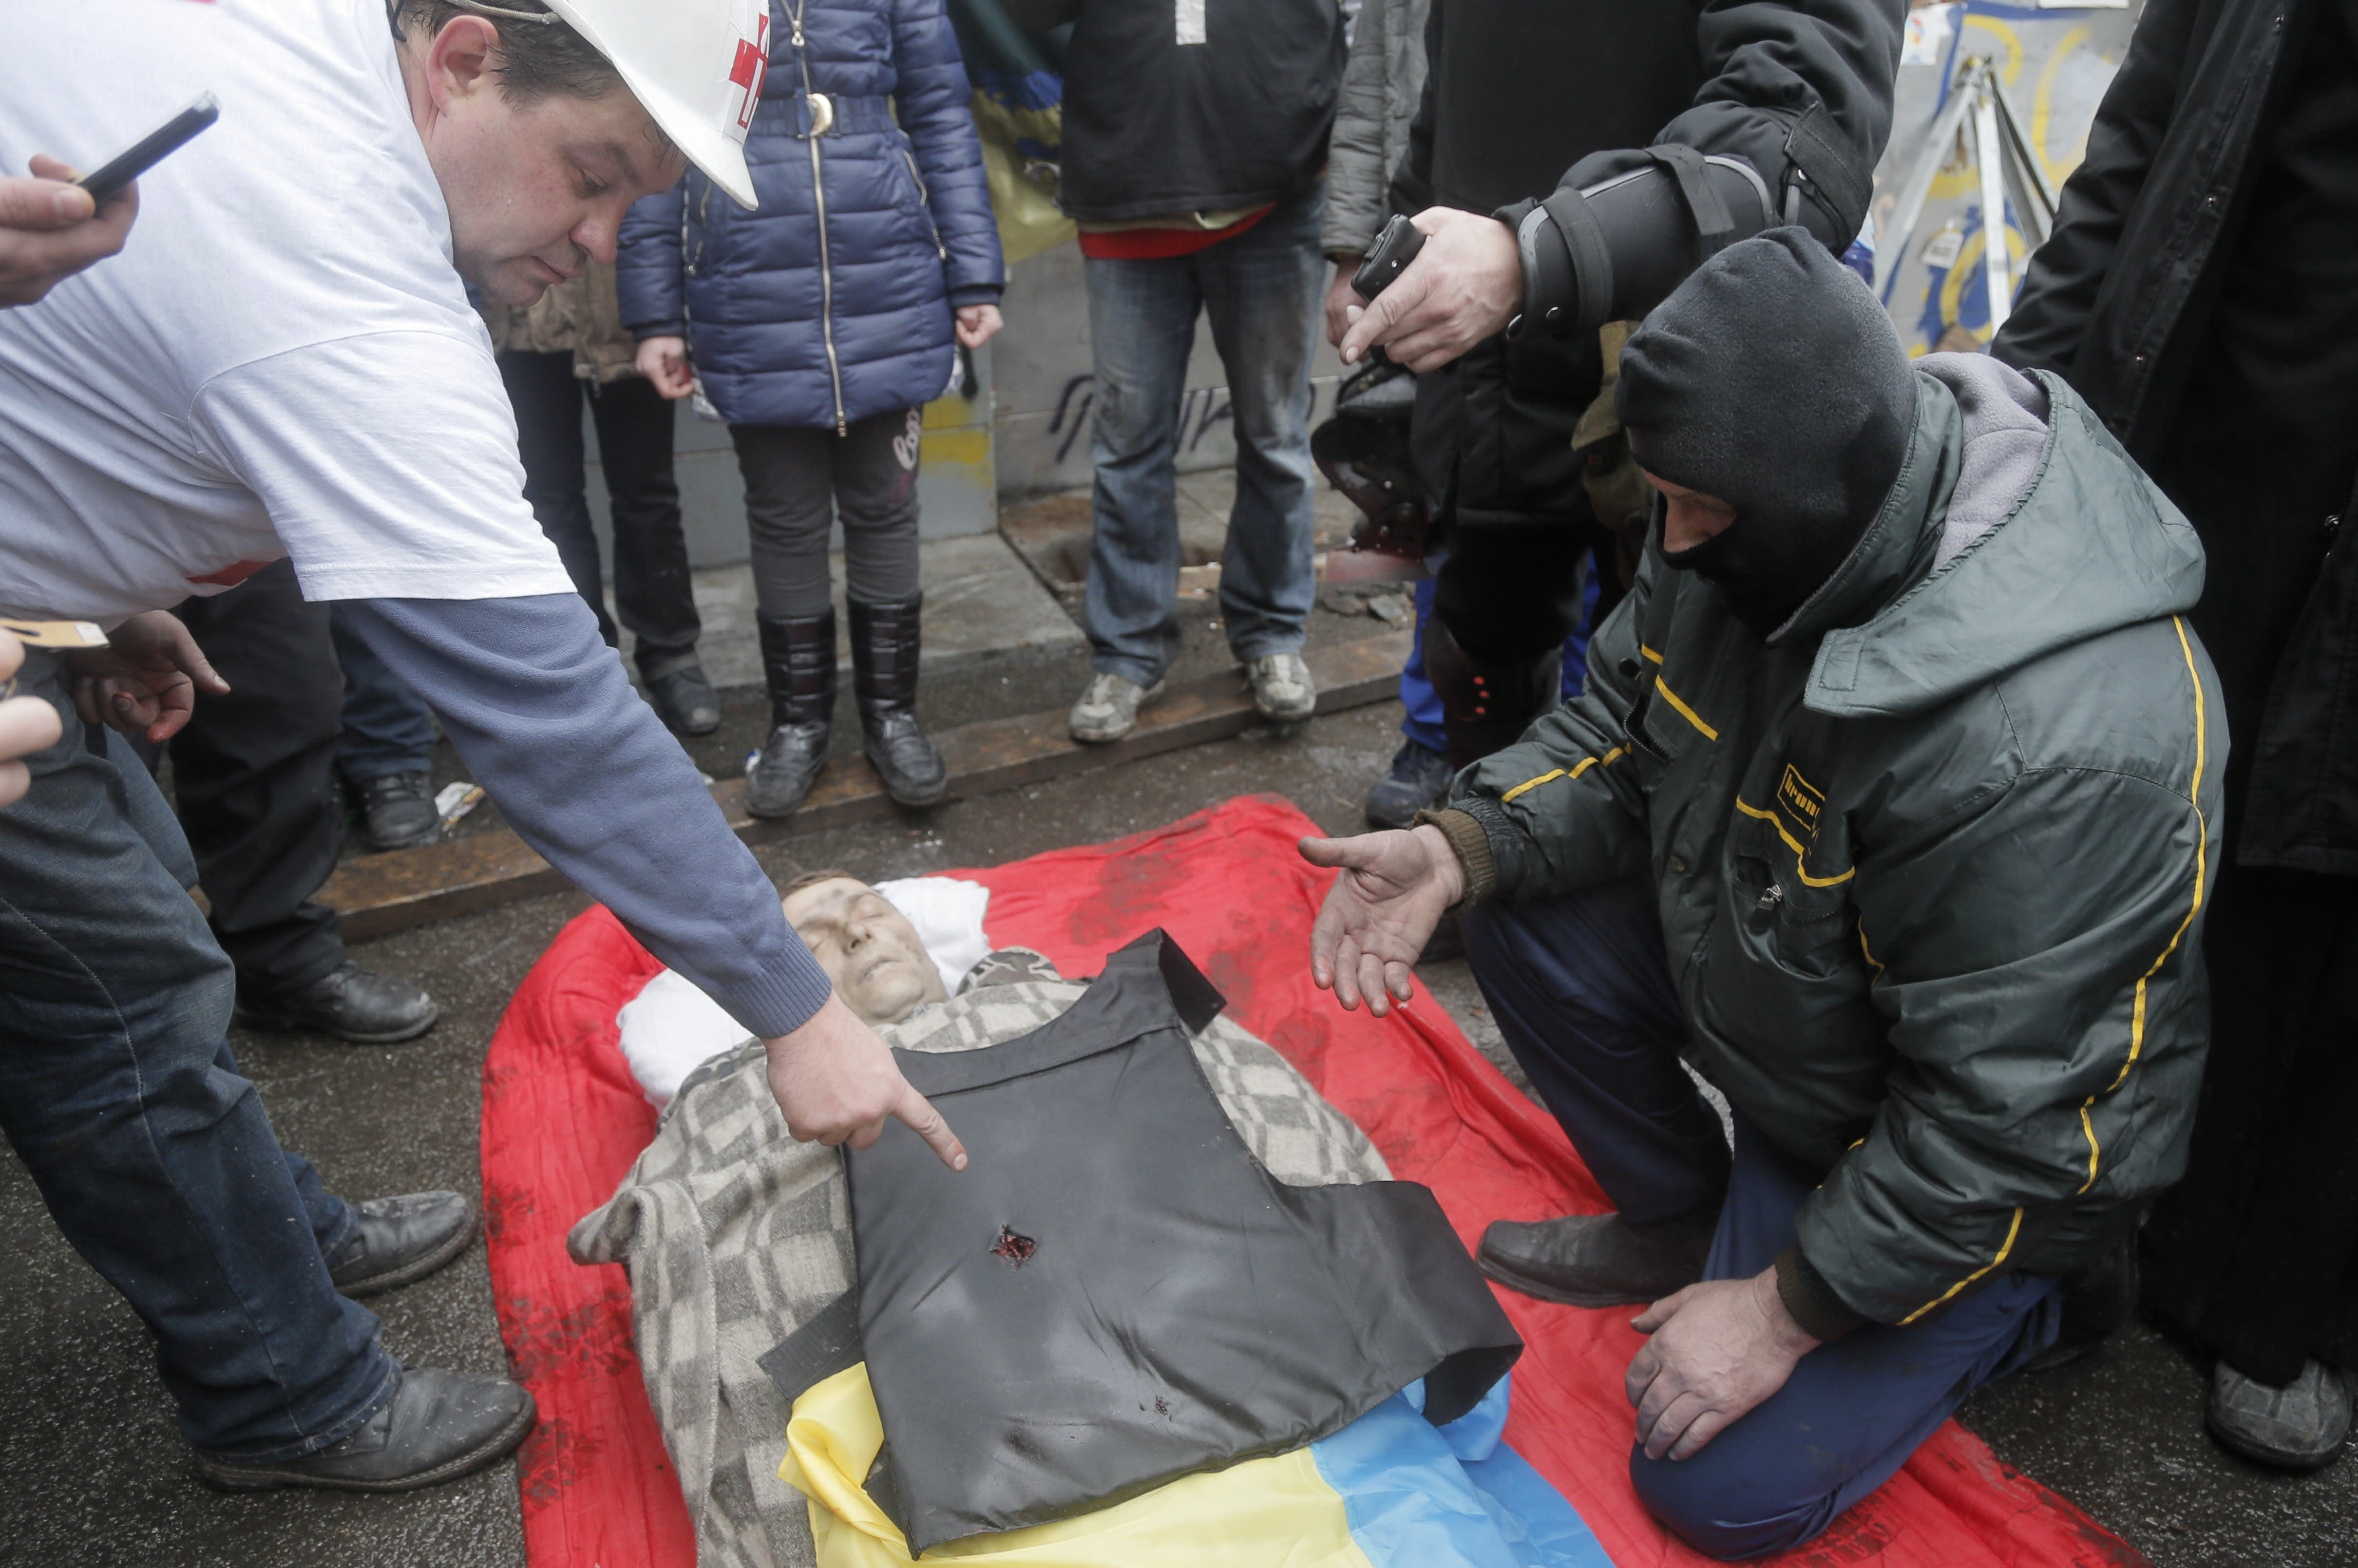 FILE- In this Thursday, Feb. 20, 2014 file photo, people look at a bullet hole in victim's vest who was killed during a clash between riot police and protesters in Independence Square, the epicenter of the country's current unrest in Kiev, Ukraine. As questions circulate about who was behind the lethal snipers that sowed death and terror in Ukraine's capital, doctors and others told the AP the similarity of bullets wounds suffered by opposition victims and police indicates the snipers were specifically trying to stoke tensions and spark a larger, angrier clash between opposition fighters and government security forces. (AP Photo/Efrem Lukatsky, file)